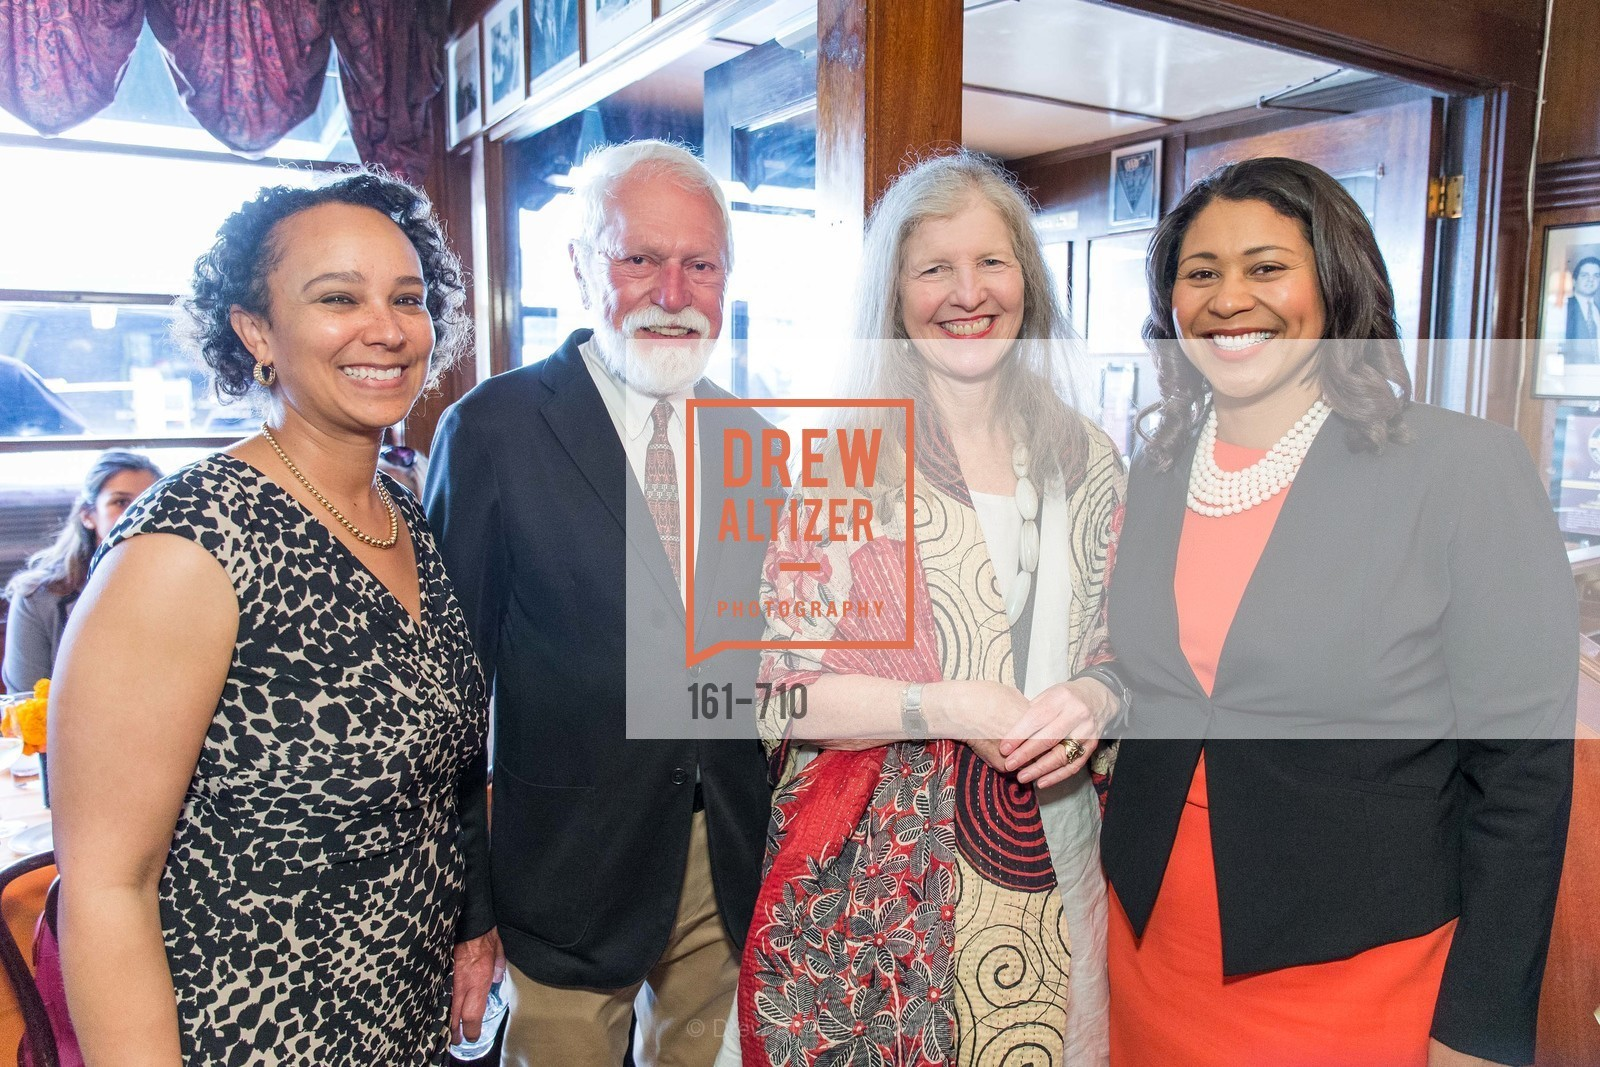 Naomi Kelly, Lewis Sykes, Leah Garchrik, London Breed, 3-RING LUNCH CELEBRATION Honoring RENEL BROOKS-MOON, US, June 8th, 2015,Drew Altizer, Drew Altizer Photography, full-service event agency, private events, San Francisco photographer, photographer California